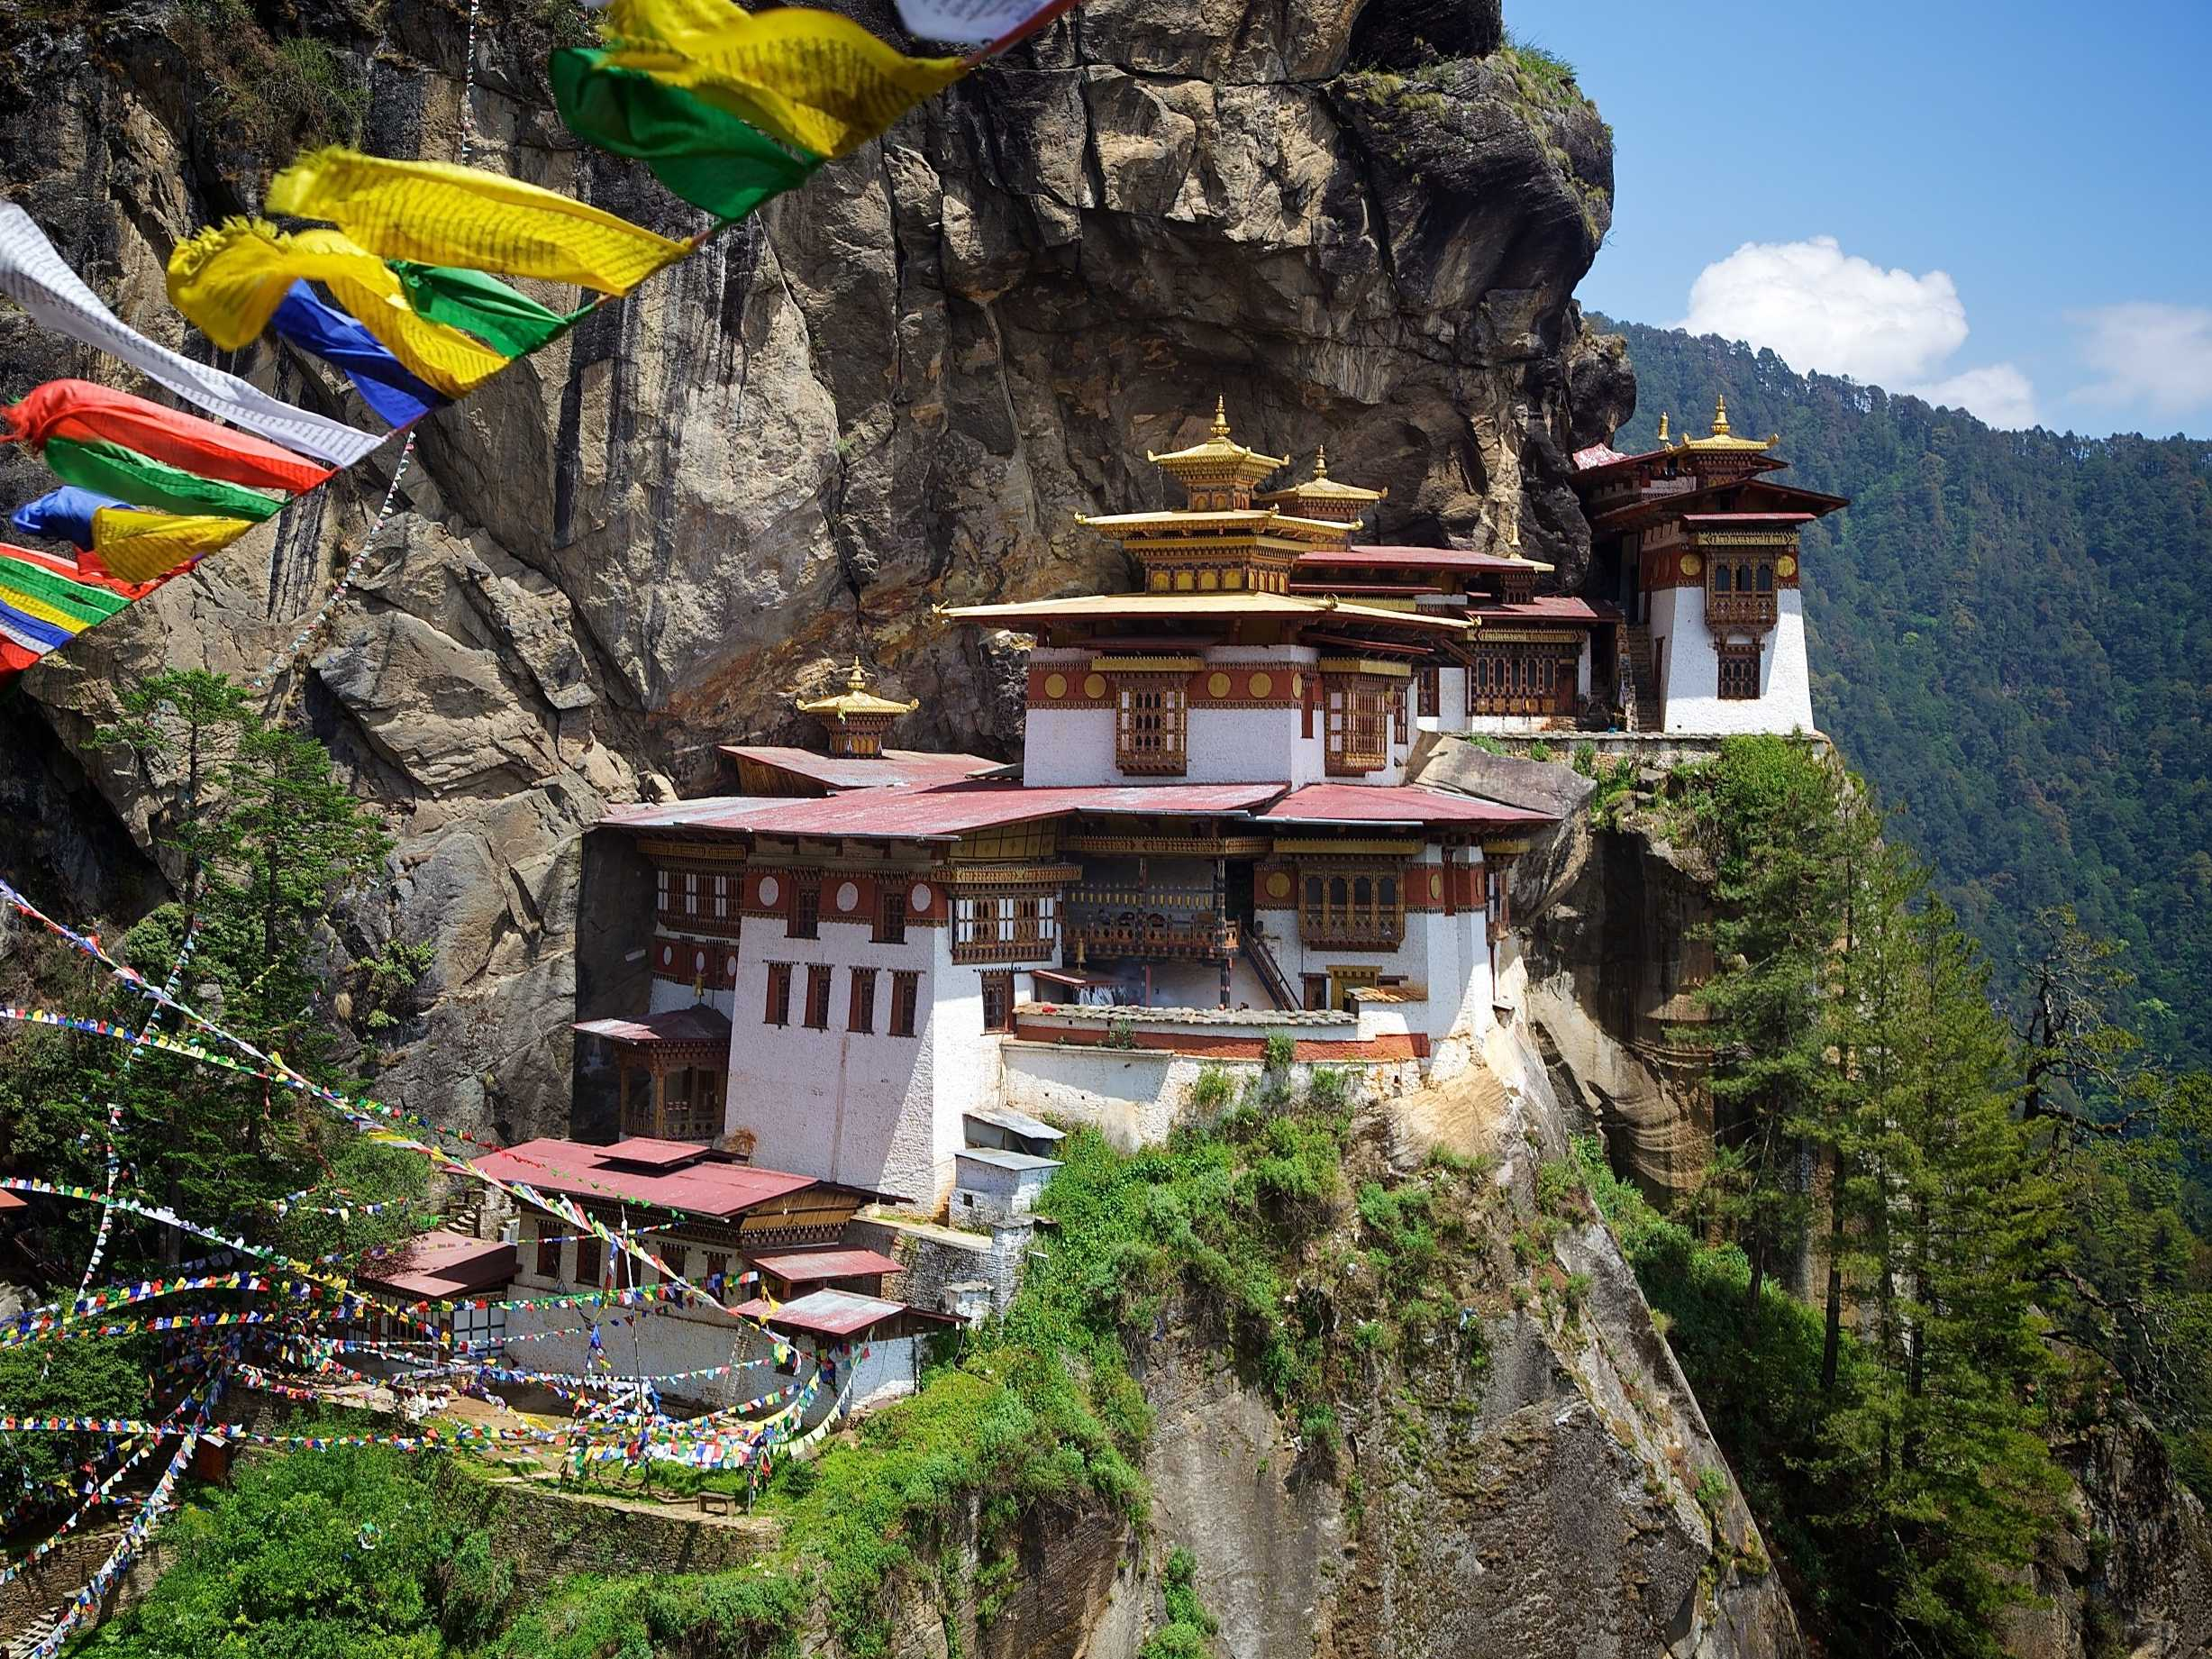 "Climb up to the Taktsang Palphug Monastery, known as the Tiger's Nest, in Paro valley, Bhutan. Padmasambhava, or the ""Second Buddha"" of Bhutan, is believed to have meditated here."